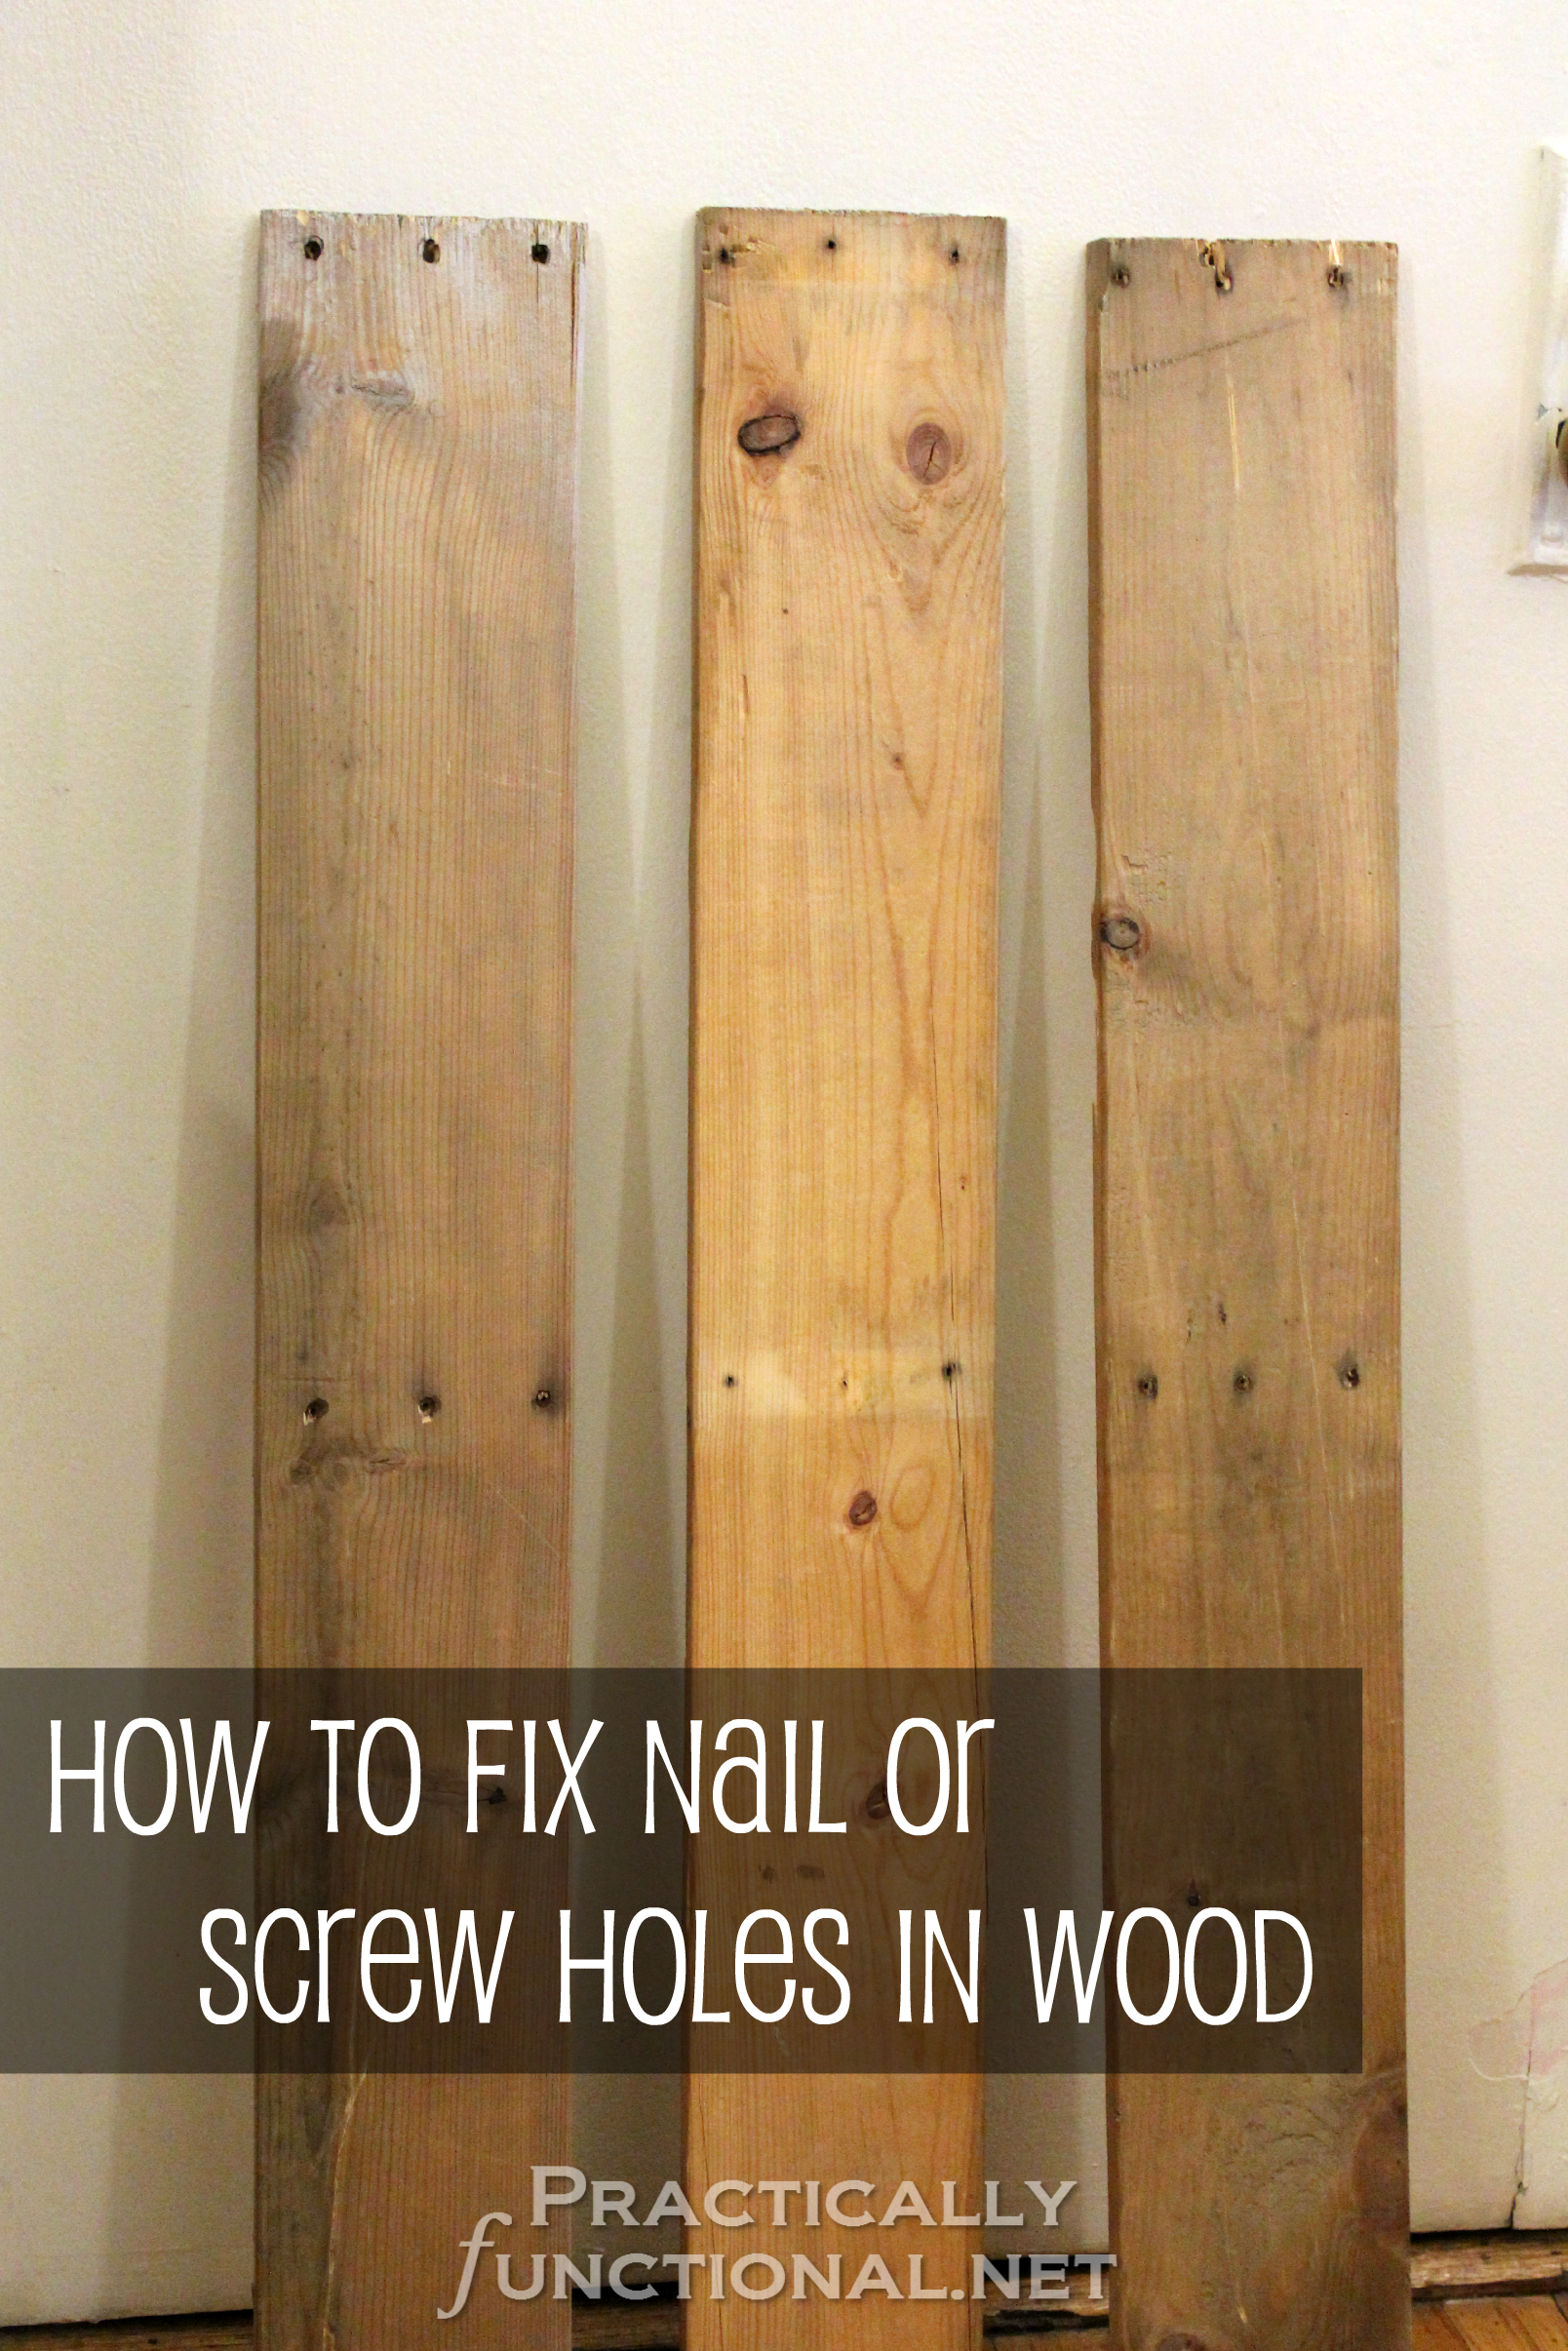 How To Fix Nail Or Screw Holes In Reclaimed Wood Diy Pallet Nailholes Screwhole Wood Diy Easy Woodworking Projects Wood Pallet Projects